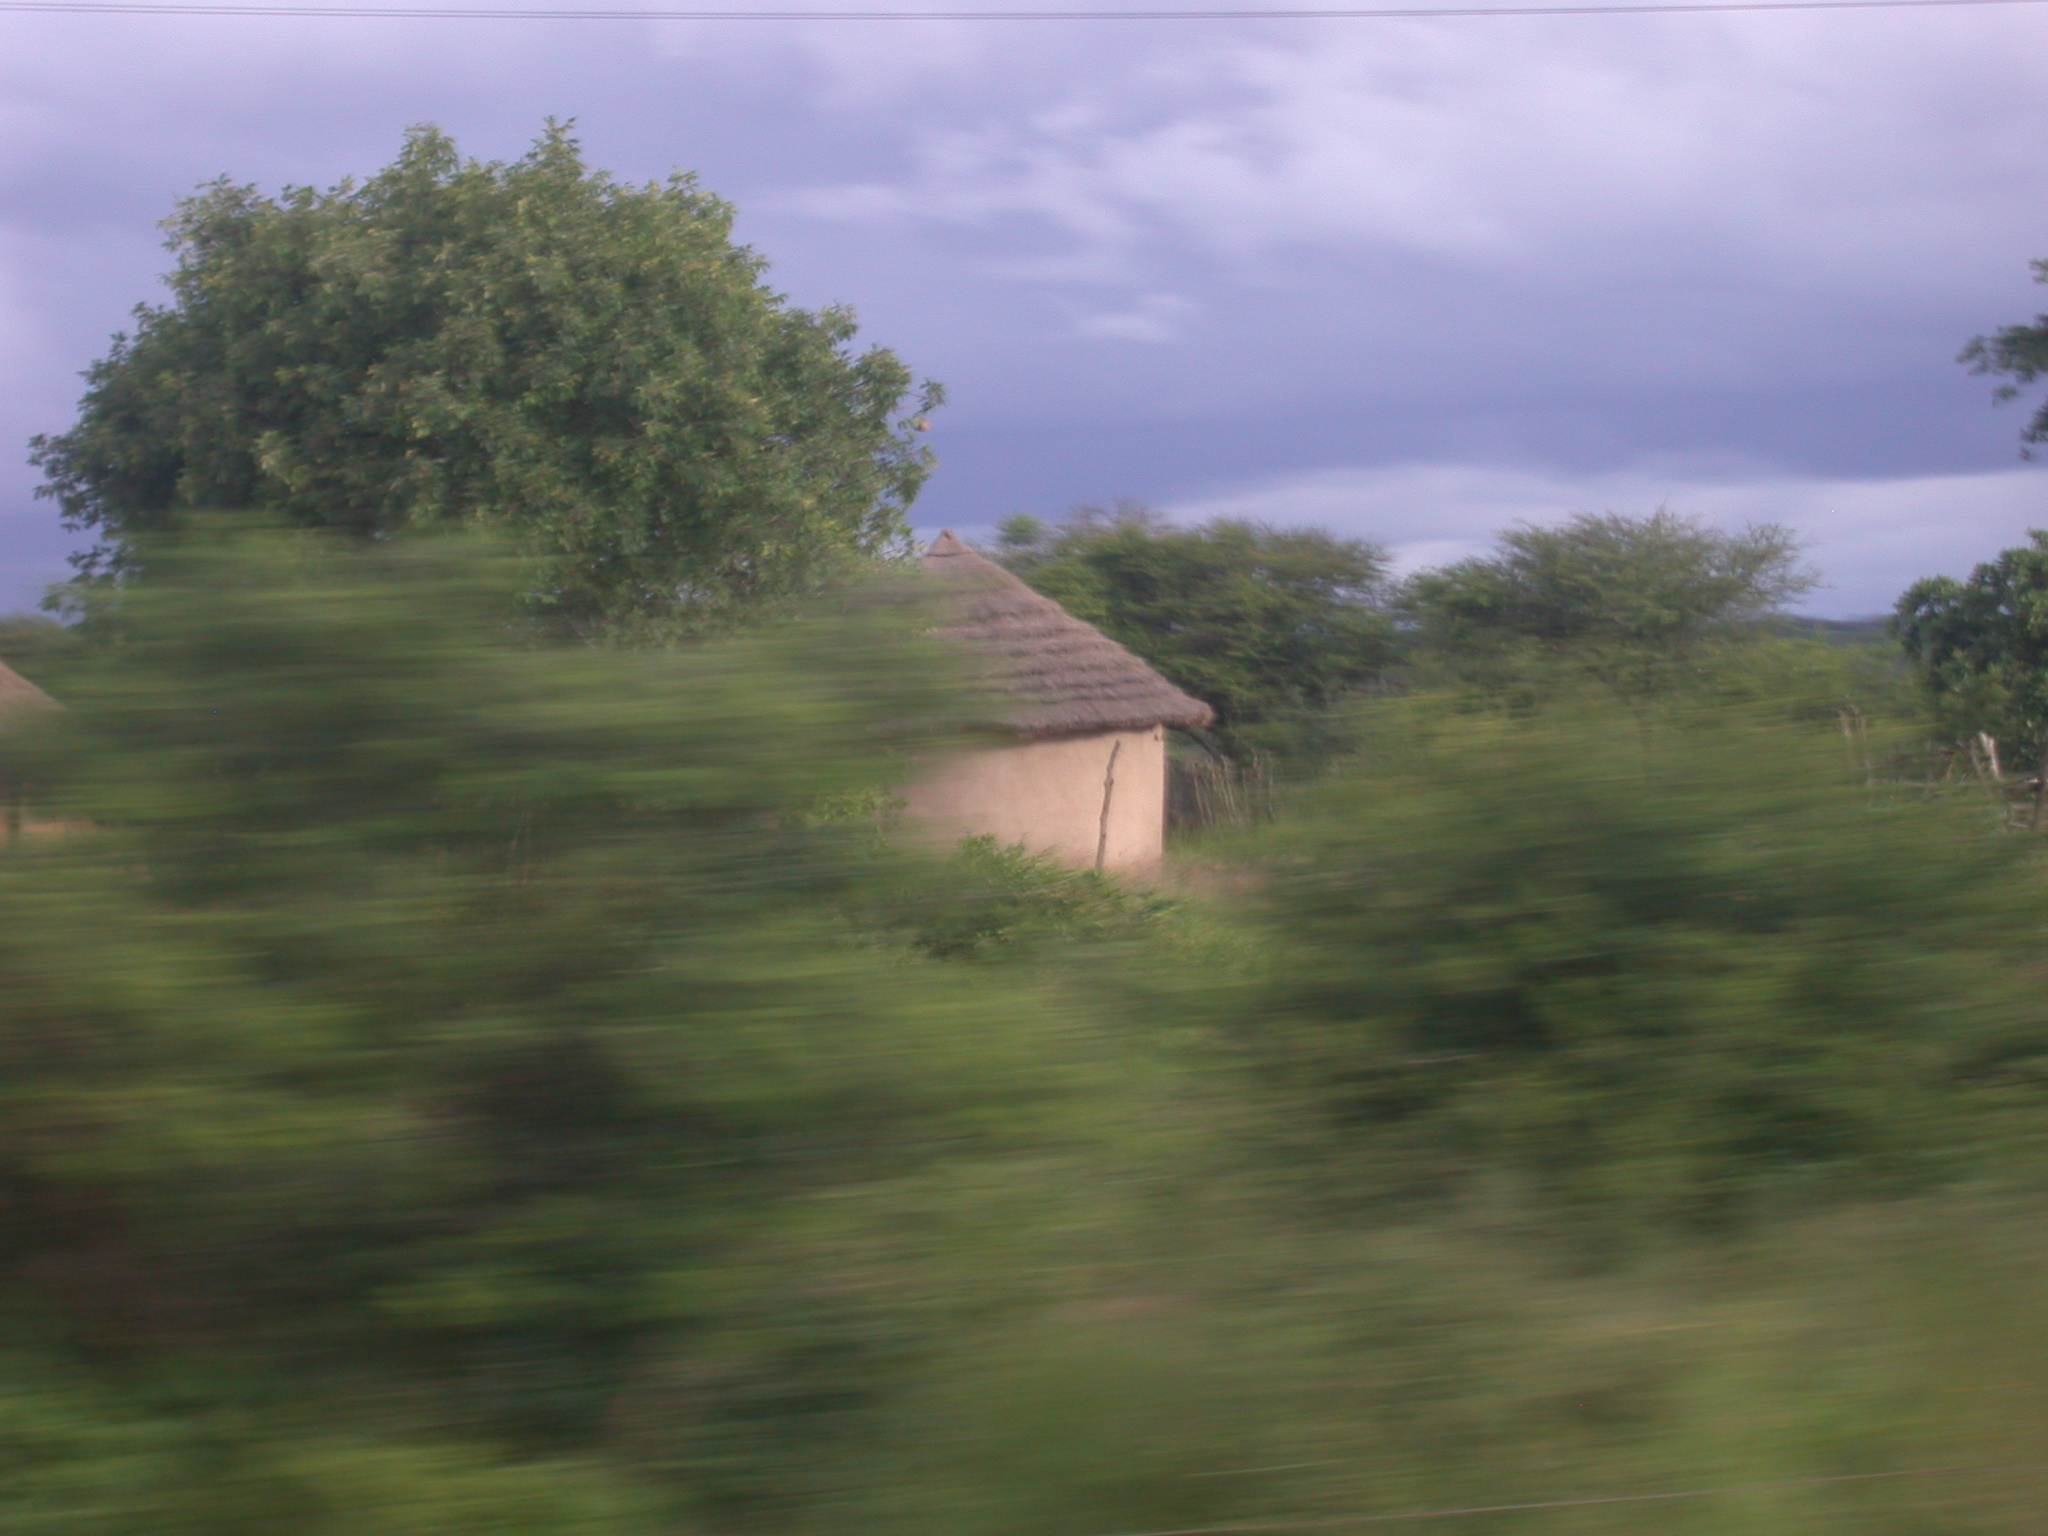 Landscape and Cone-on-Cylinder Buildings Between Harare and Masvingo, Zimbabwe